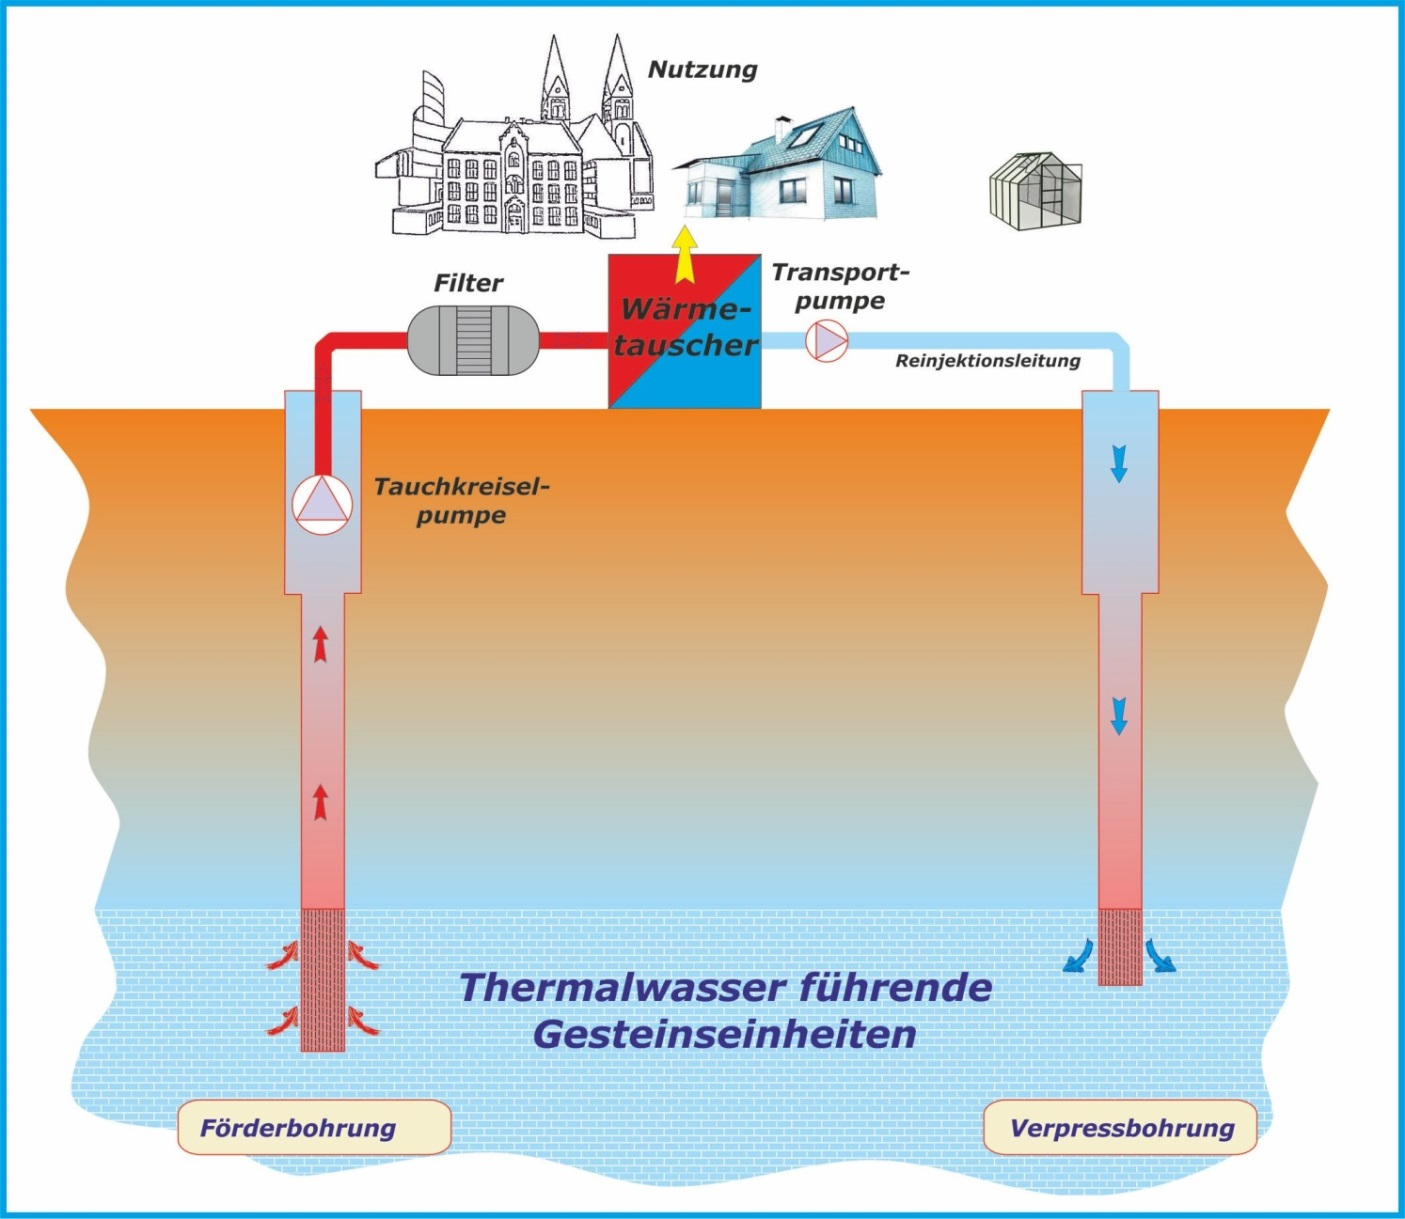 Project gars am inn fg geothermie gmbh geothermal energy heat generation pooptronica